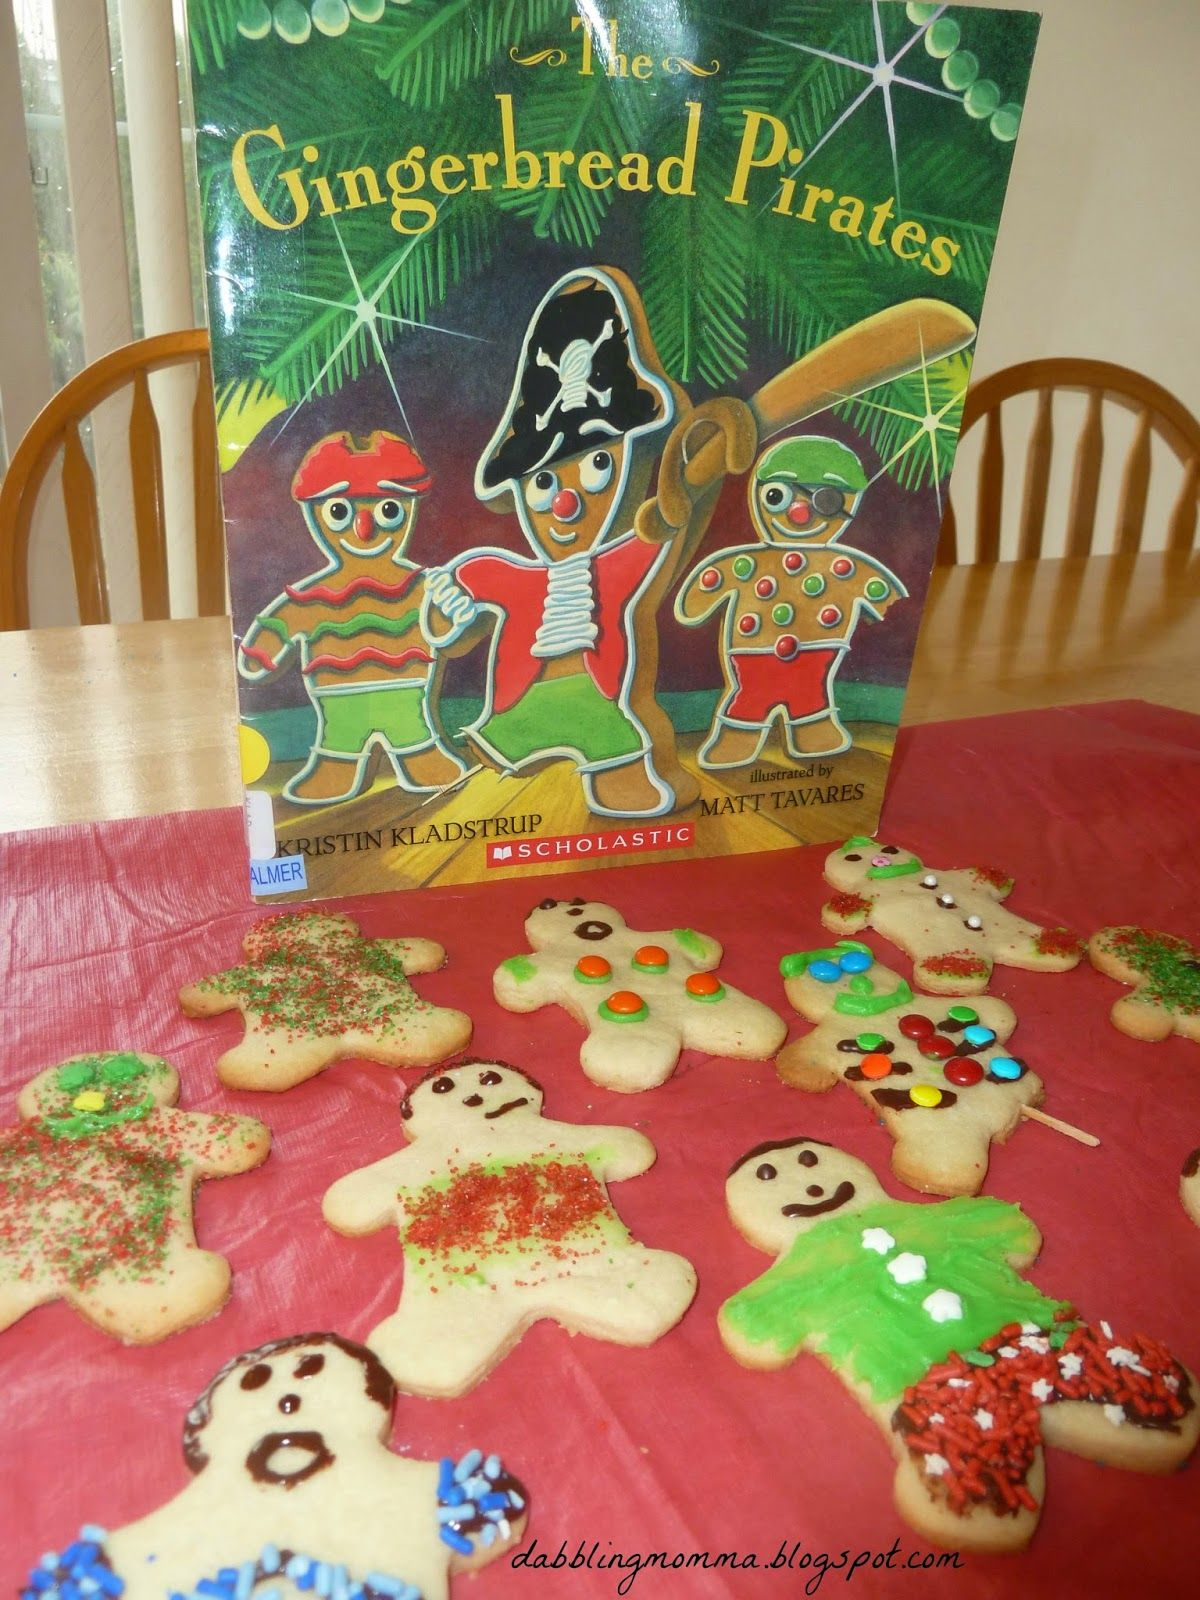 Dabblingmomma The Gingerbread Pirates Book And Activity